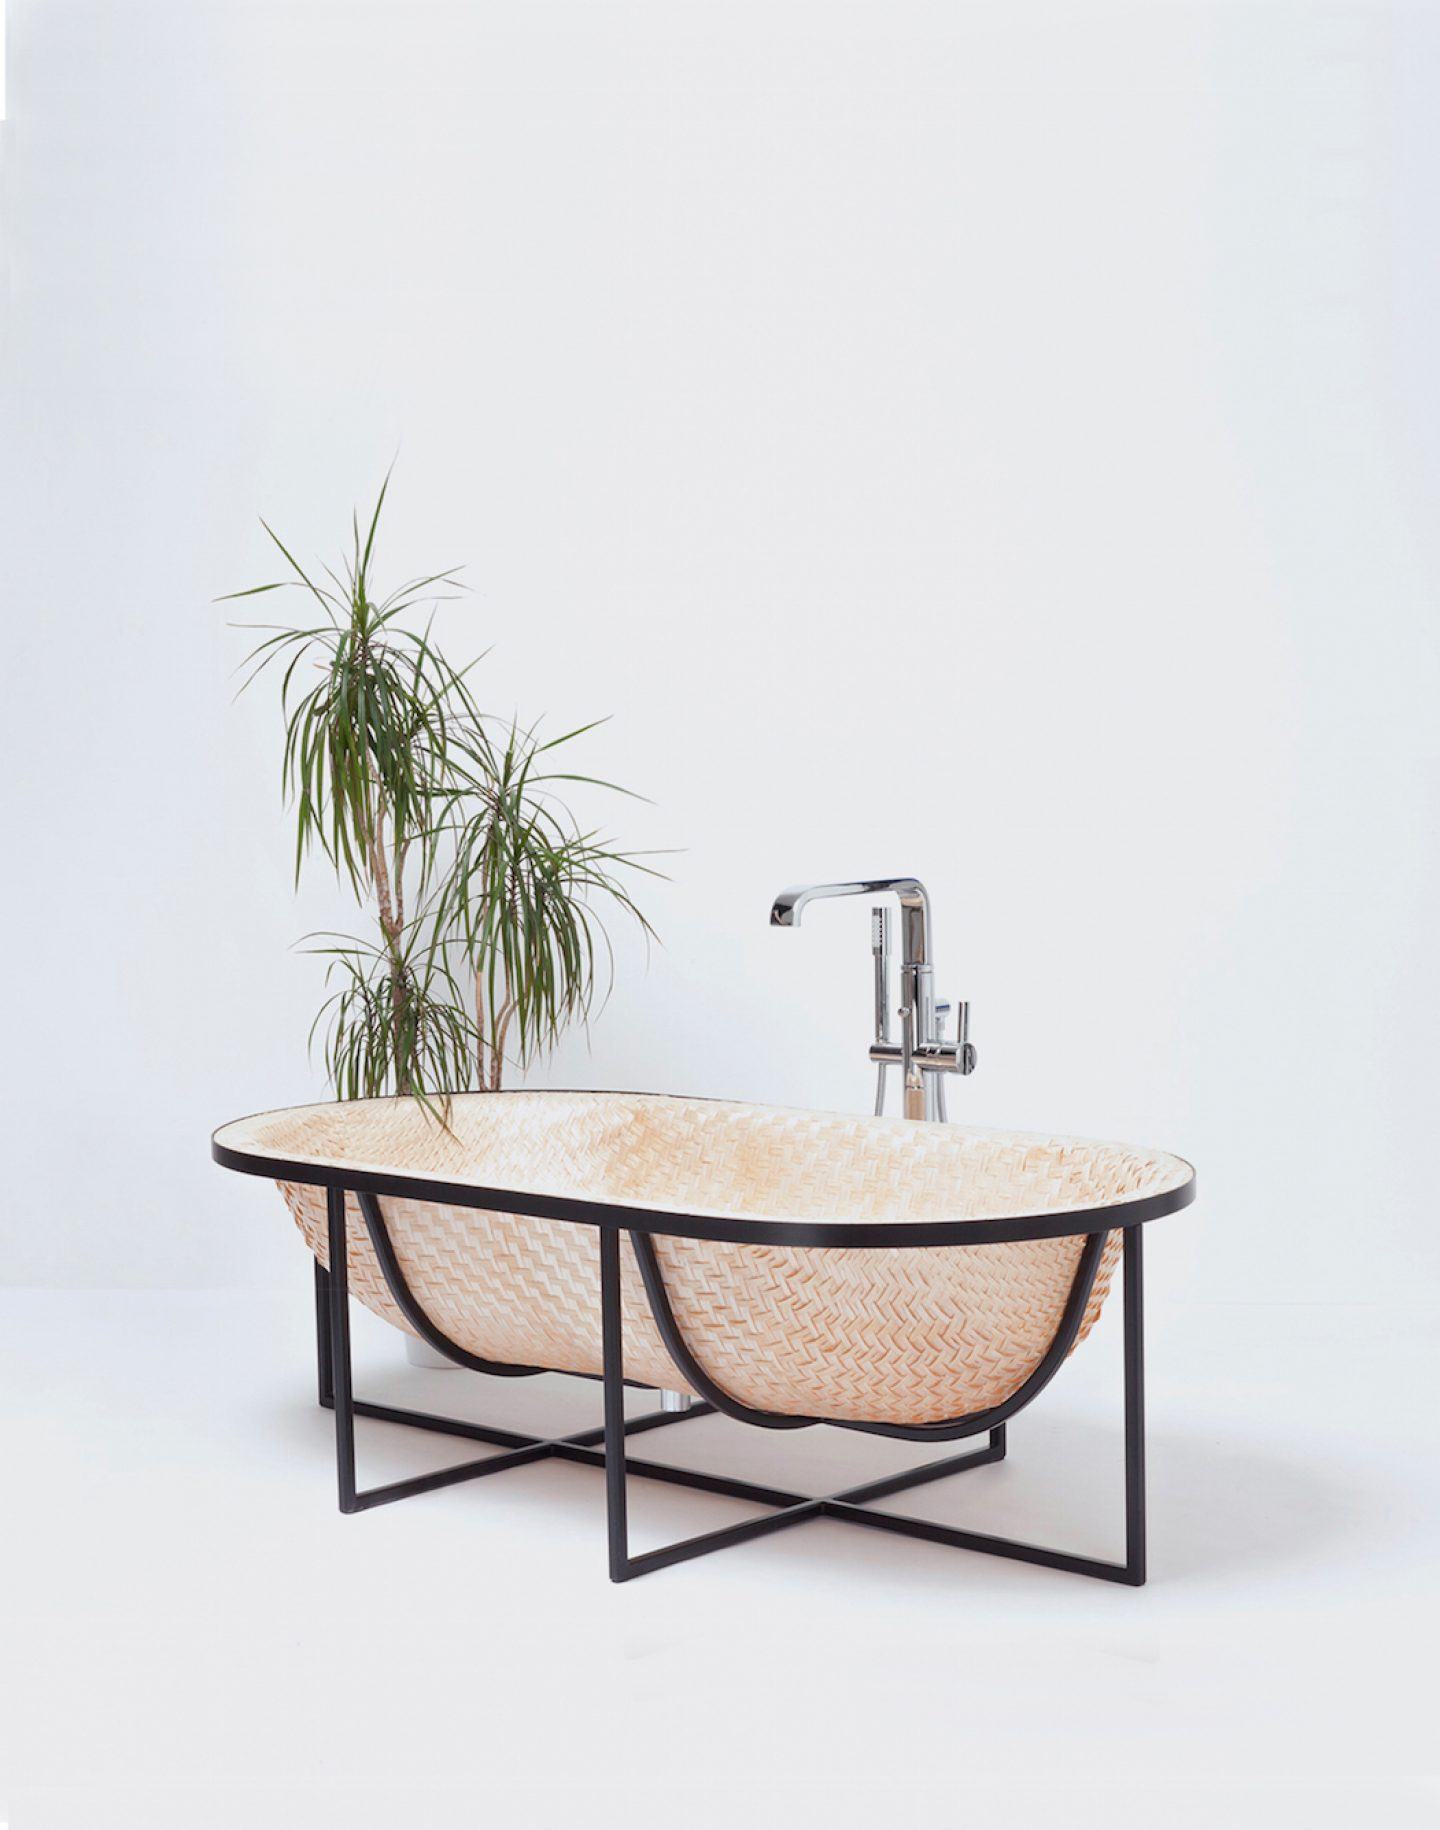 tal-engel-bathtub_design_001a